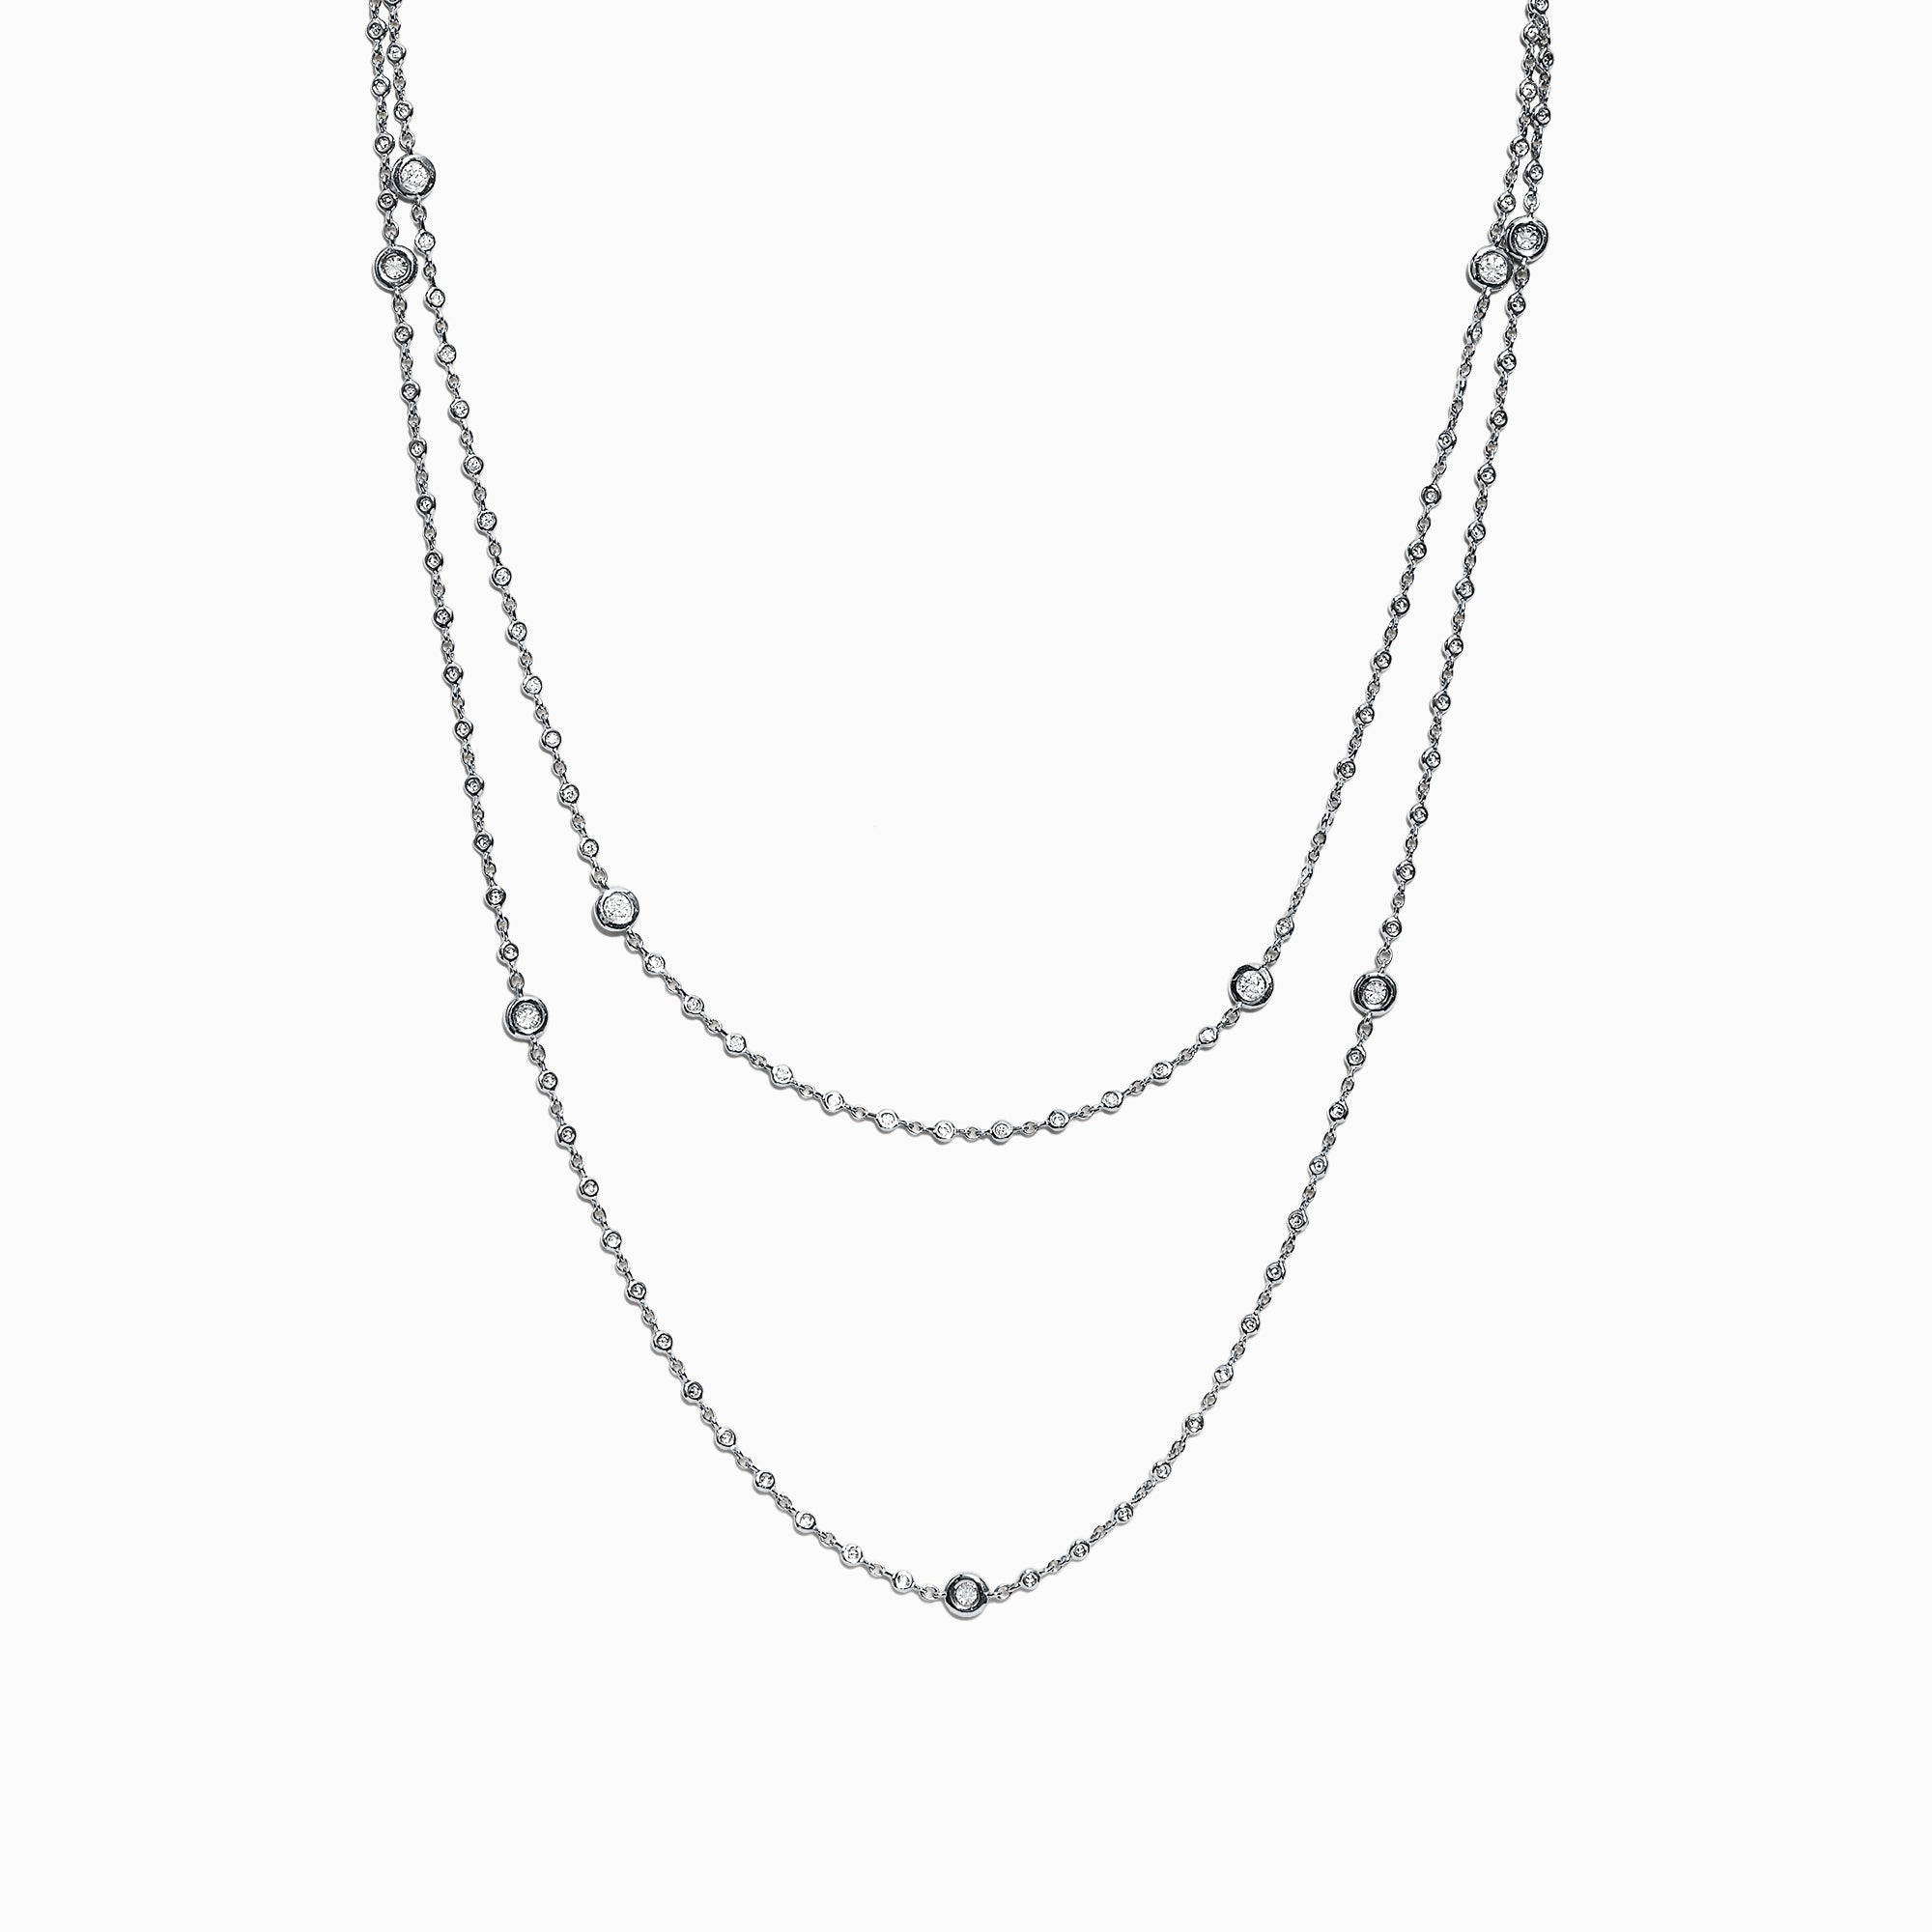 Effy Pave Classica 14K White Gold Diamond Station Necklace, 1.35 TCW